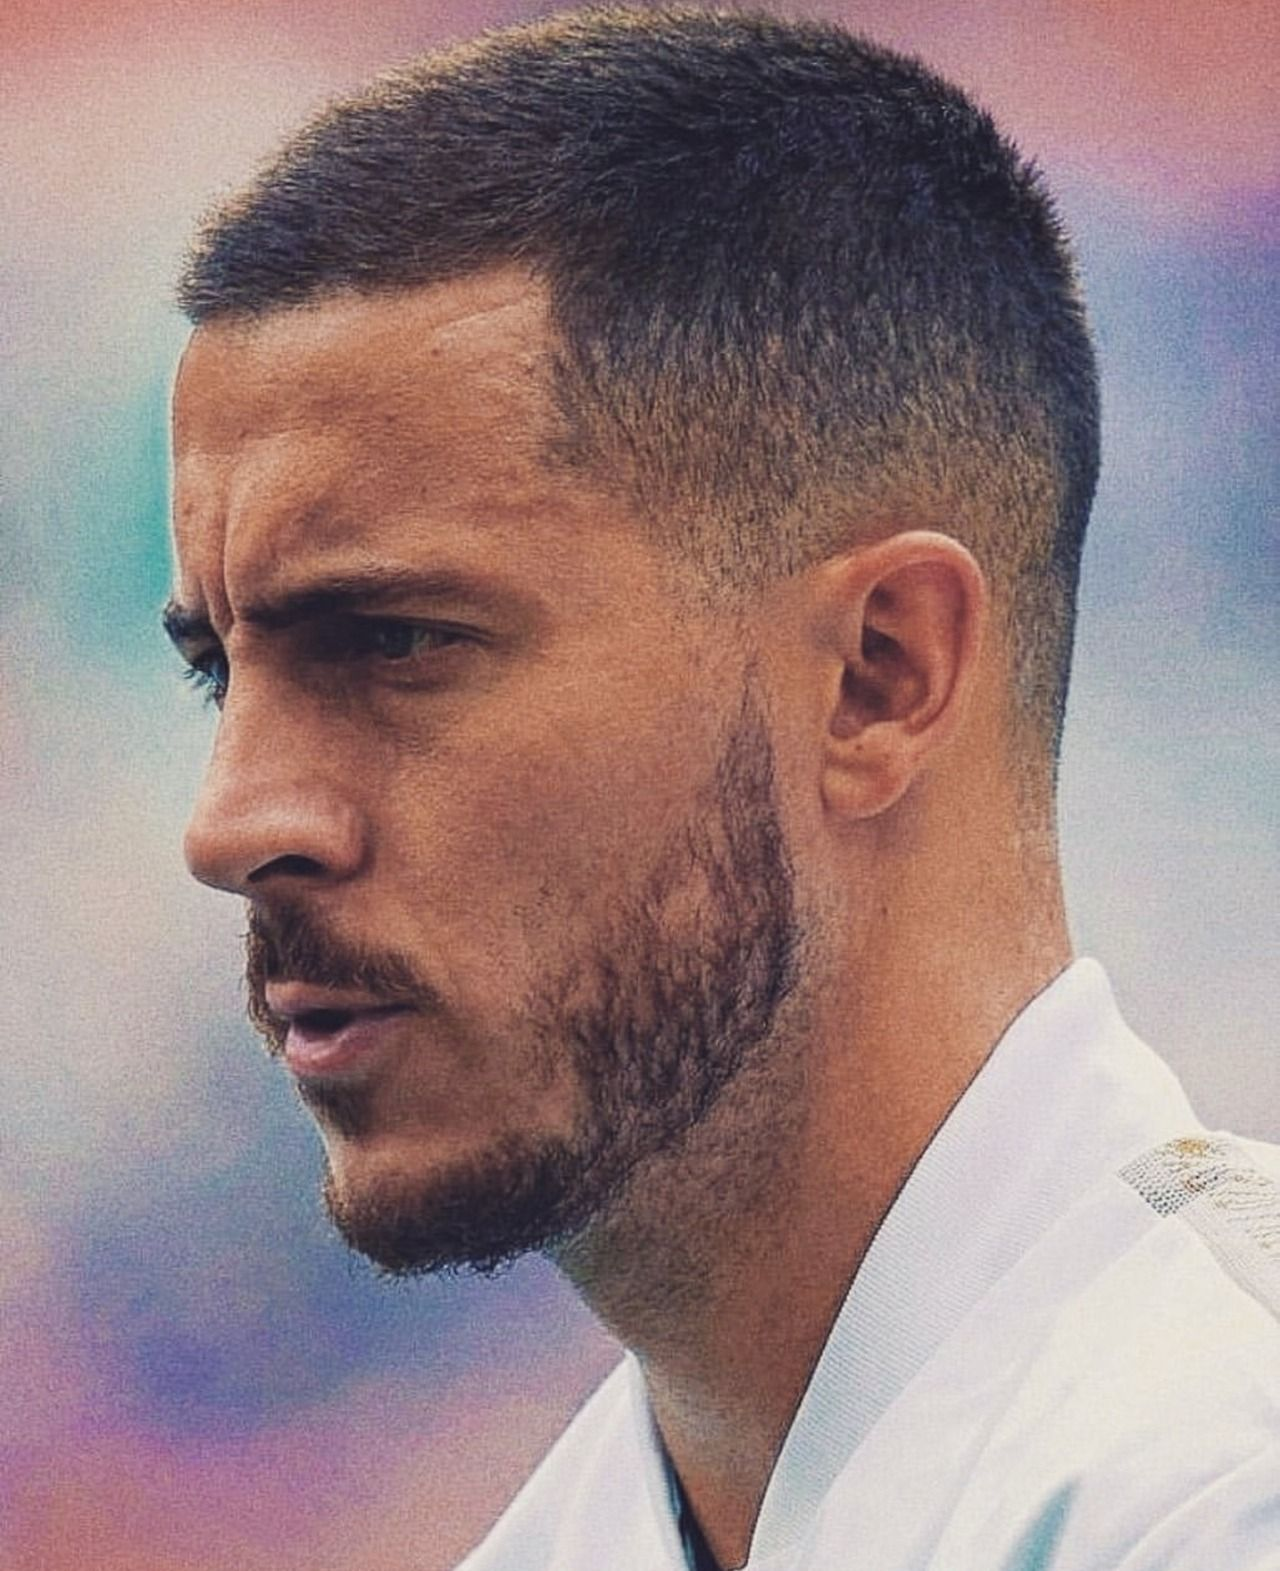 Eden Hazard Photos Mens Haircuts Short Hair And Beard Styles Long Hair Styles Men